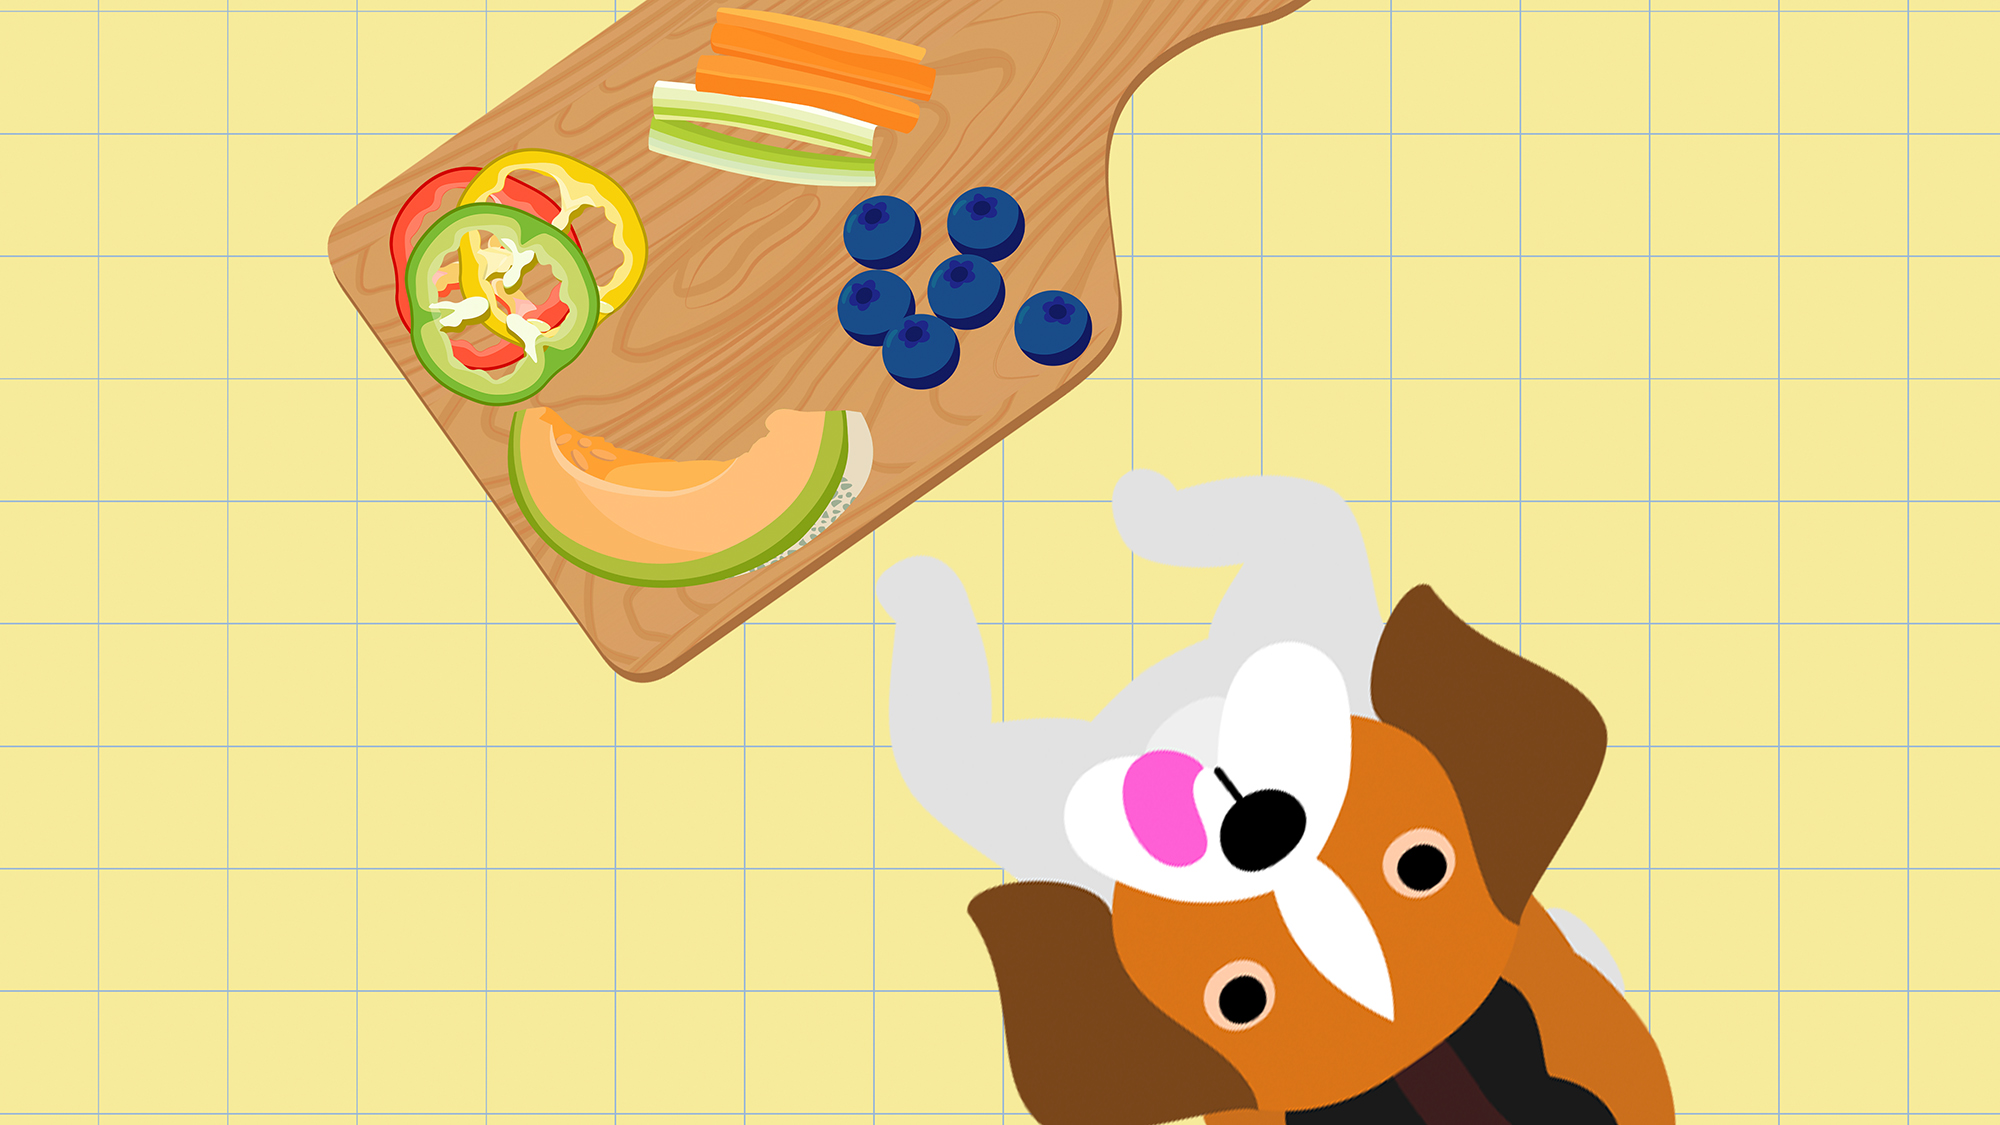 An illustration of a dog with a charcuterie board